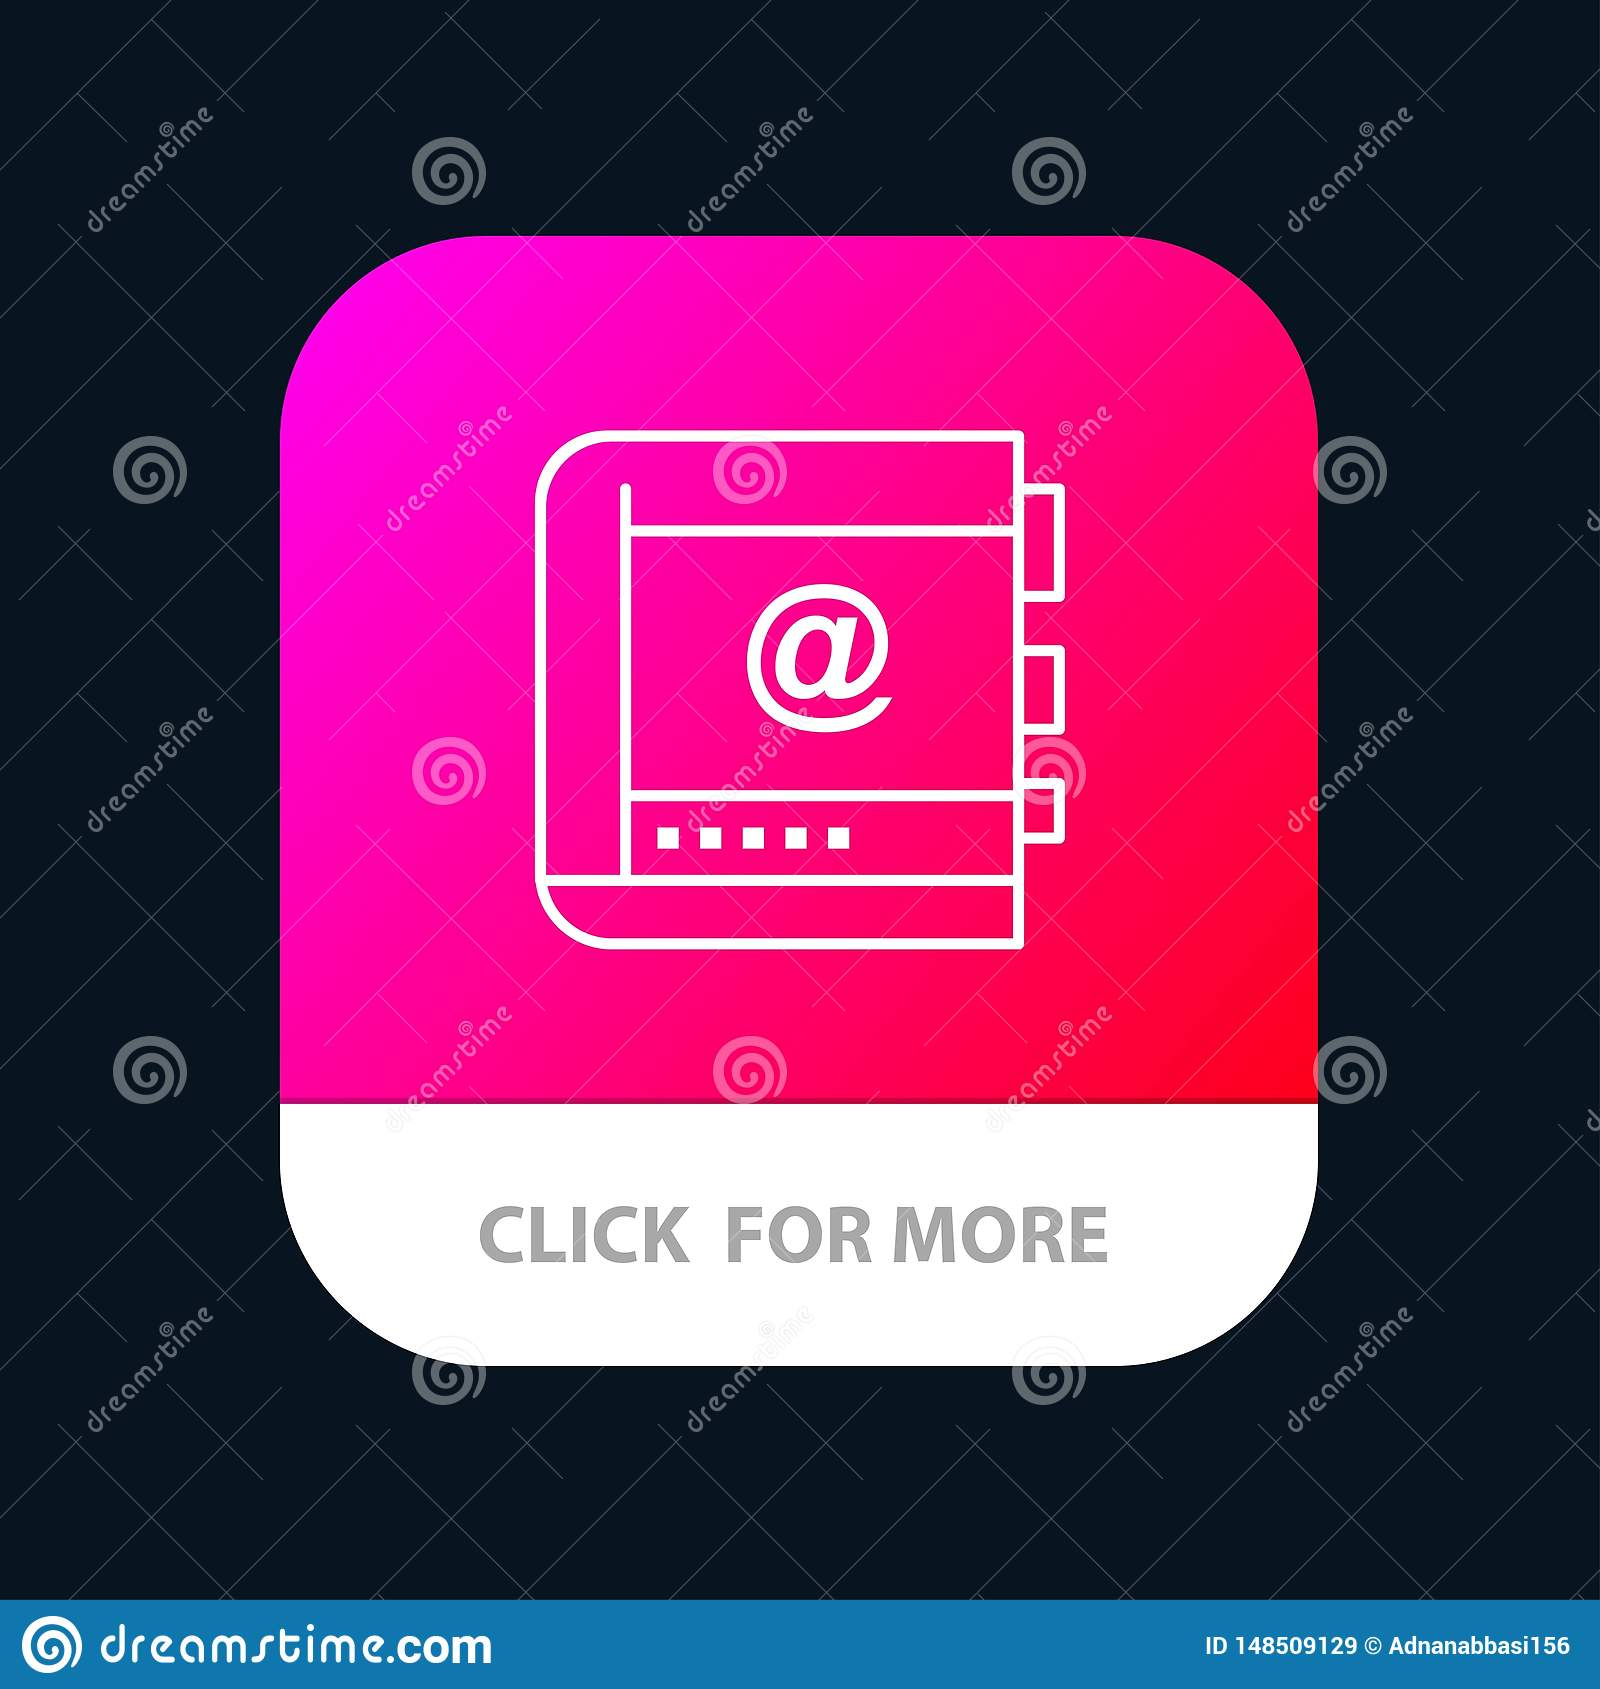 Book, Business, Contact, Contacts, Internet, Phone